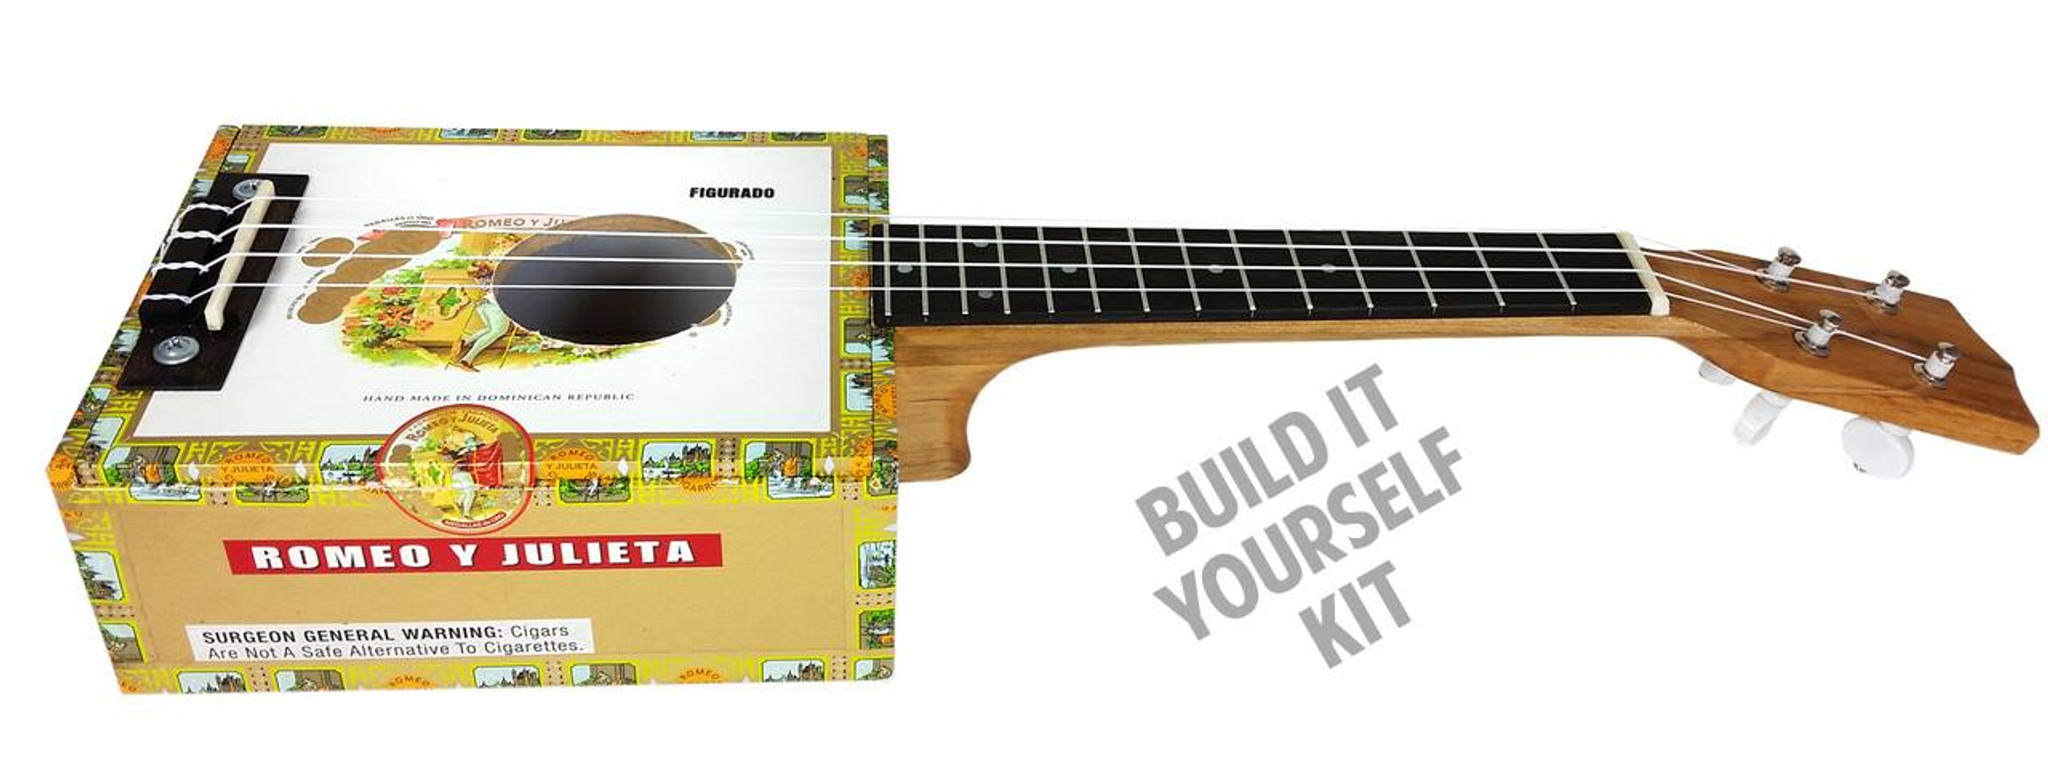 Cigar box ukulele diy kit everything included download cigar box ukulele diy kit everything included download instructions for free solutioingenieria Images